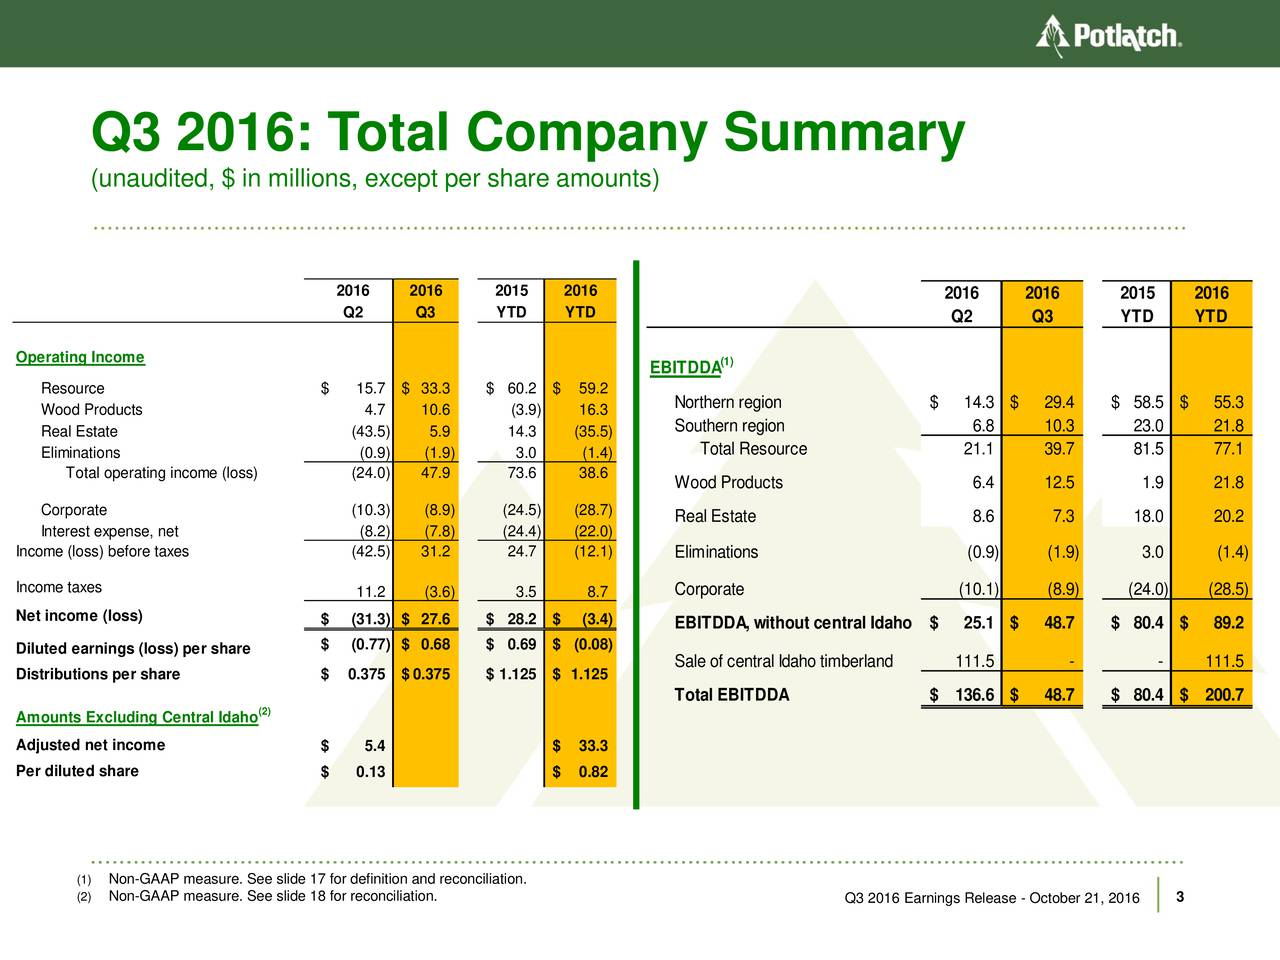 (unaudited, $ in millions, except per share amounts) 2016 2016 2015 2016 201 6 2 016 201 5 2016 Q 2 Q 3 YT D Y TD Q 2 Q 3 Y TD YT D O peratig Incom e (1) E BIT DD A R esource $ 15.7 $ 33.3 $ 60. $ 59.2 N orthern r gin $ 1 4. $ 29.4 $ 58.5 $ 55 . W ood P rdu ct 4. 10.6 (3.) 16.3 R ealEstate (43.5) 5.9 14. (35.5) S outhern region 6. 10.3 23.0 21 . TotalR eso urce 2 1. 39.7 81.5 77 . E lminatons (0.9) (.9) 3. (1.4) Totaloperatng ico me (oss) (24.0) 47.9 73. 38.6 W ood Prod ucts 6. 12.5 1.9 21 . C orpor t (10.3) (.9) (24. ) (28.7) R ea lEstate 8. 7.3 18.0 20 . Int rst expense,net (8.2) (.8) (24. ) (22.0) I come (lss) befre t x s (42.5) 31.2 24. (12.1) E lm i atons (0. ) (1.9) 3.0 ( .) I come taxes 11.2 (.6) 3. 8.7 C orpo rte ( 0.1) (8.9) (24.0) ( 8. ) Ne tincom e (lss ) $ (31.3) $ 27.6 $ 28. $ (3.4) E B I DD A, withou tce ntralIdah o$ 2 5. $ 48.7 $ 80.4 $ 89 . $ (0. 7) $ 0.68 $ 0.9 $ (0.08) Diluted earnings (oss) per share S aleo fcen talIdaho ti be rand 1 11.5 - - 11 1. Distriu tons pe rshare $ 0.7 5 $0.375 $1 .25 $ 1.125 T otal EB I D DA $ 1 36.6 $ 48.7 $ 80.4 $ 20 0. Am o untsE xcluding Ce ntrl Iah o) Ad j st dn etincom e $ 5. $ 33.3 Pe rdil td sh are $ 0. 3 $ 0.82 (1) Non-GAAP measure. See slide 17 for definition and reconciliation. (2) Non-GAAP measure. See slide 18 for reconciliation. Q3 2016 Earnings Release - October 21, 20163